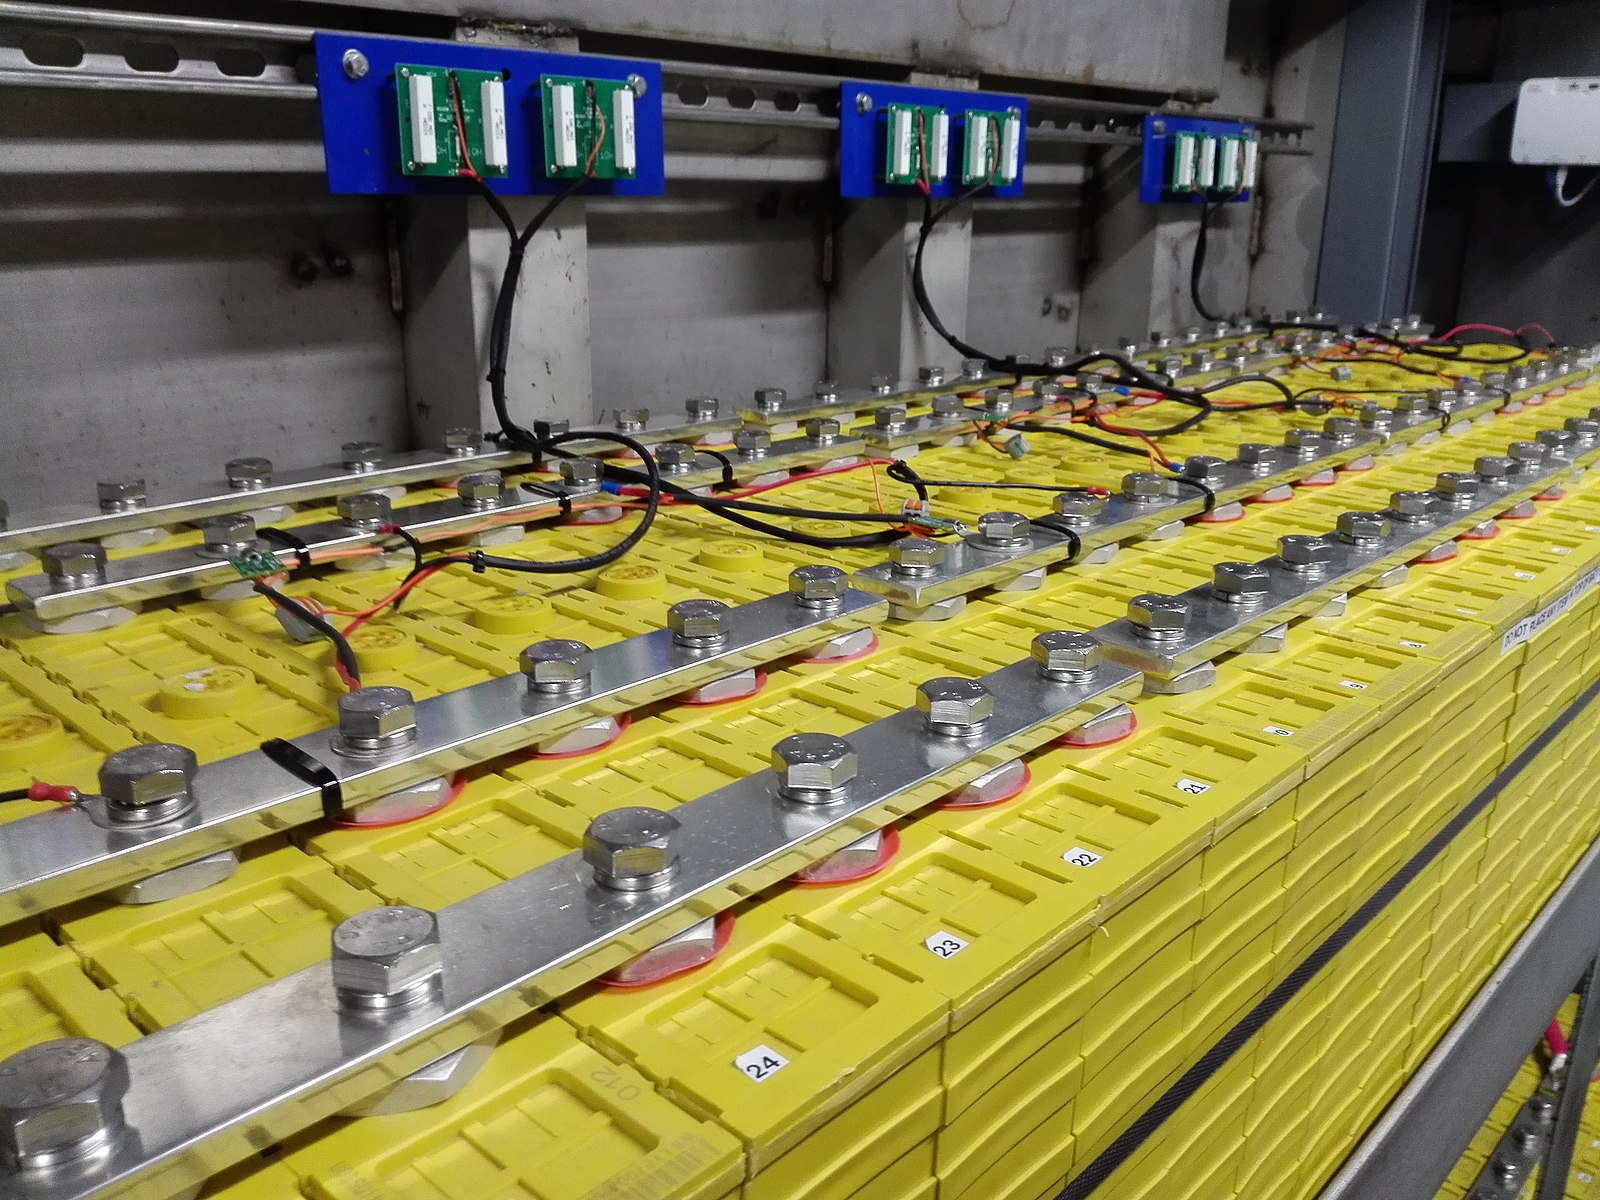 Dozens of large, yellow lithium-ion batteries are bolted together. They are being charged by solar power.